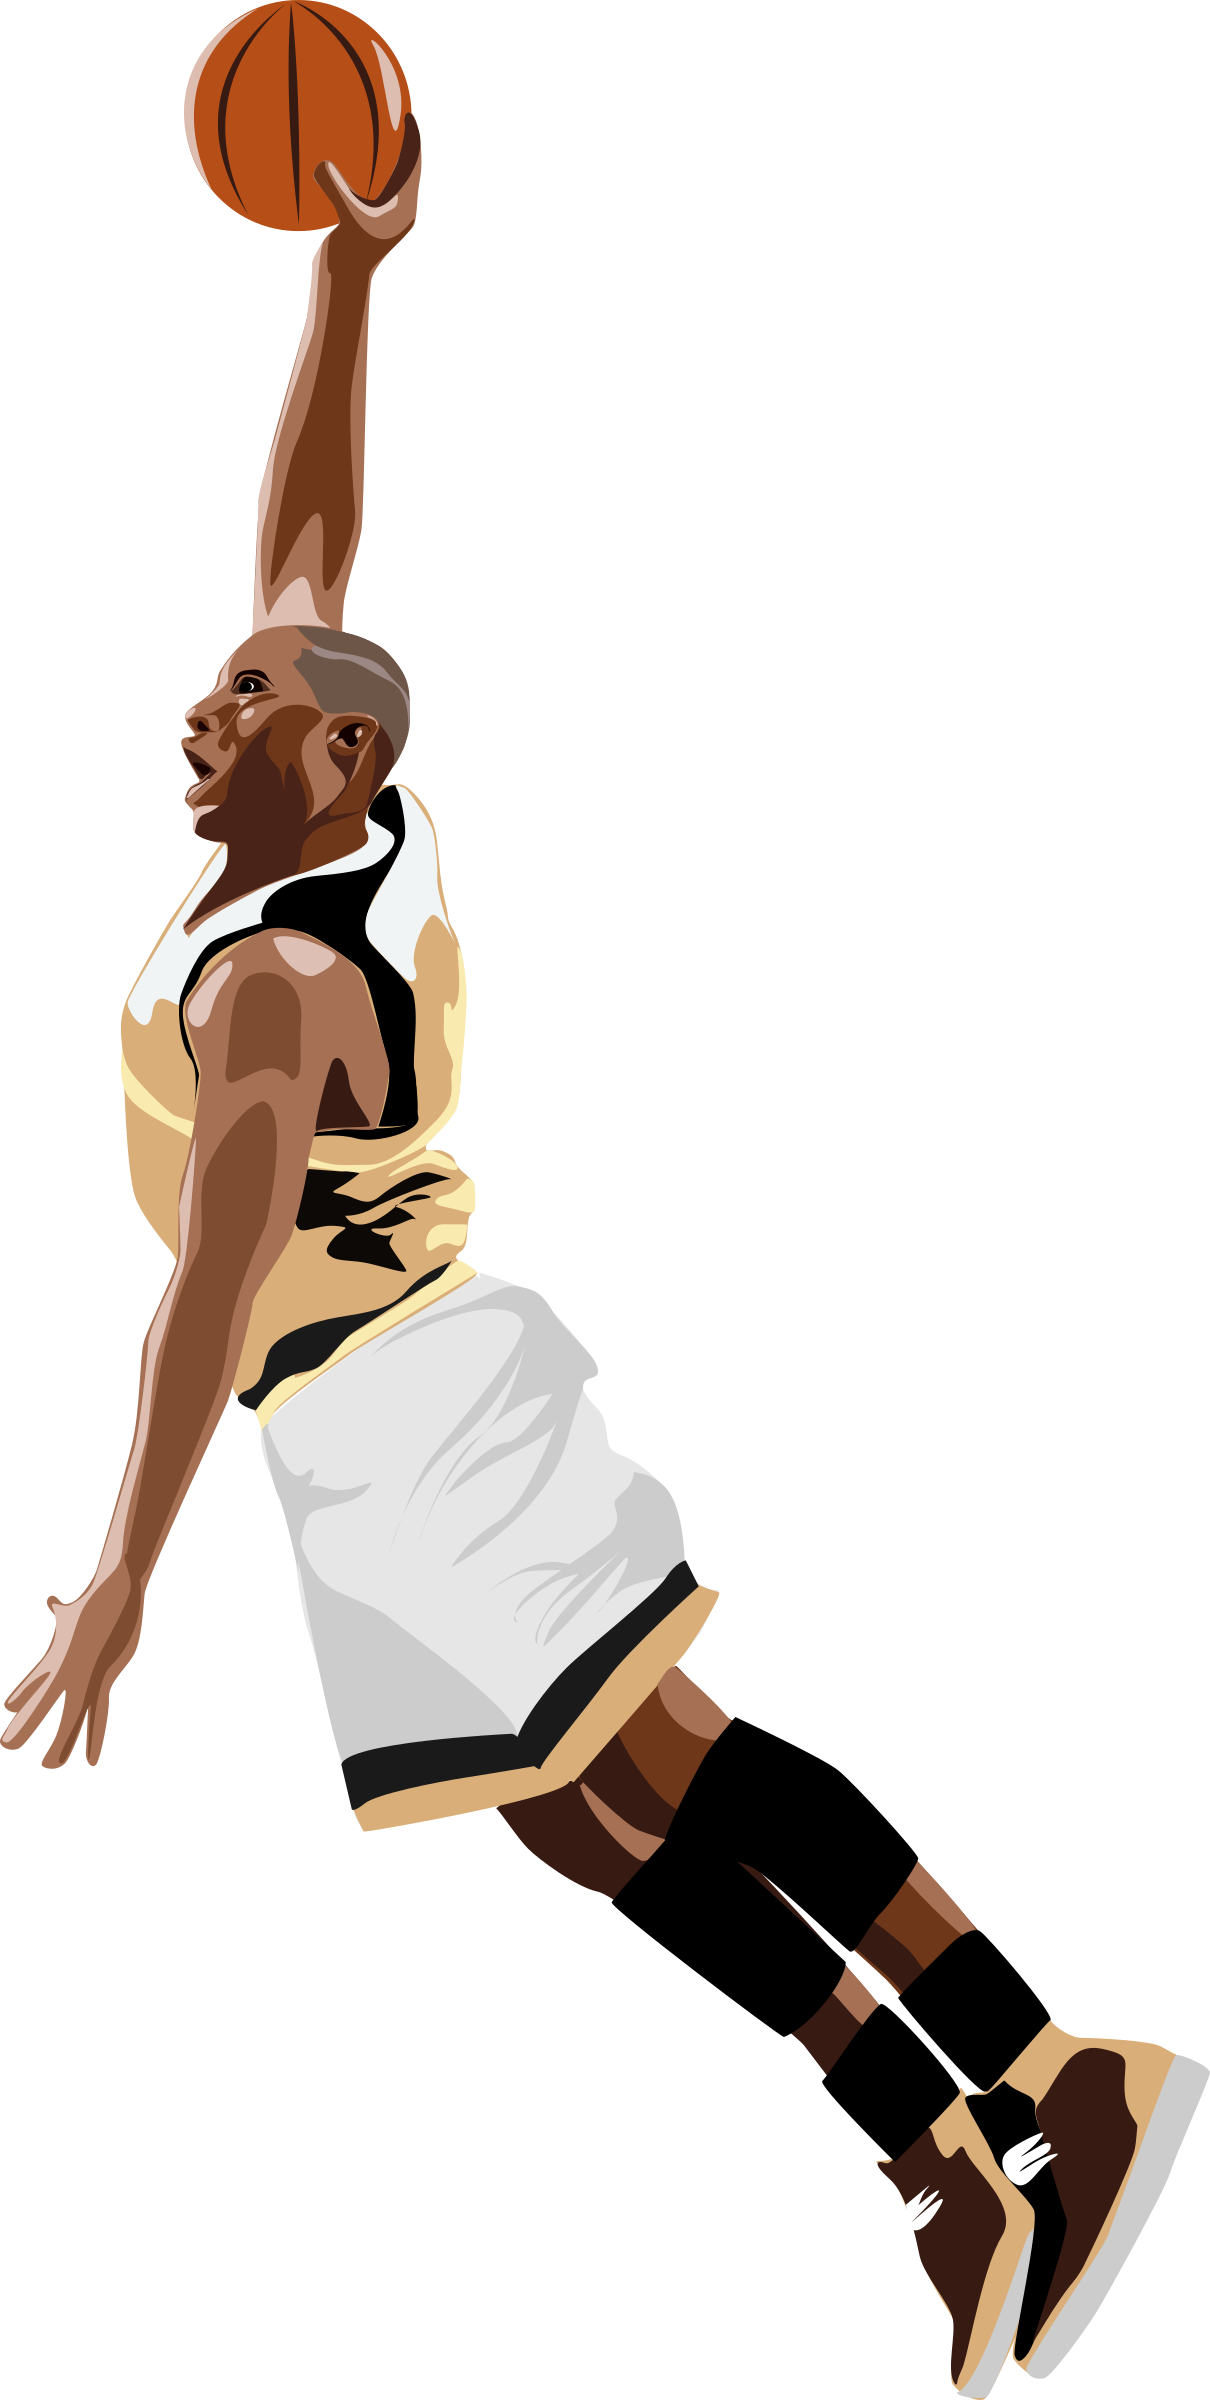 Clipart basketball player svg ⚽Free⚽ Basketball Clip Art Graphics, Images, Photos Download svg